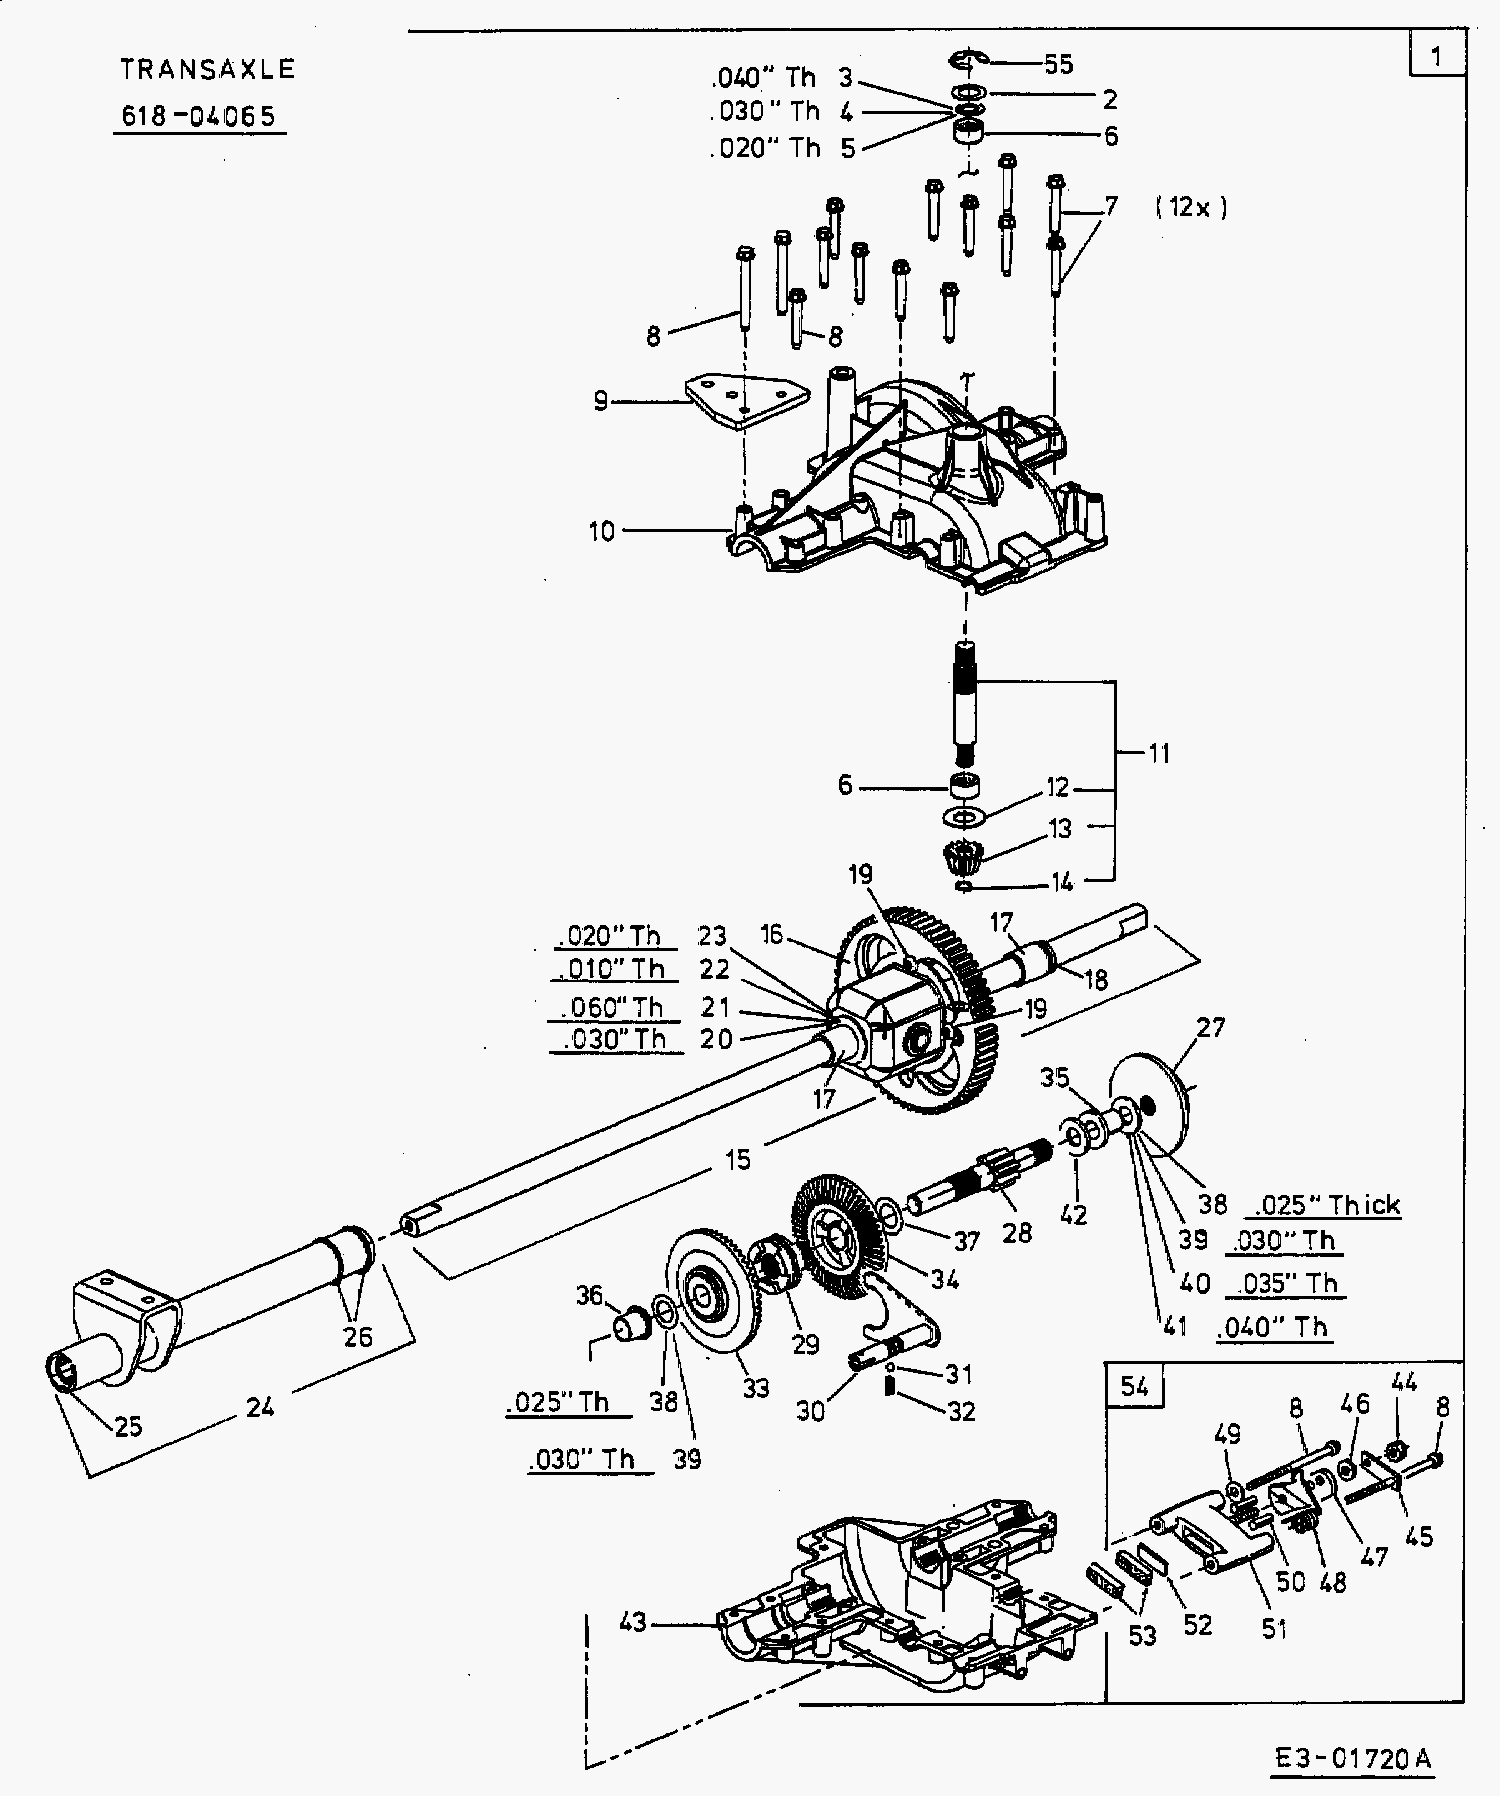 mtd yard machine wiring diagram solidfonts wiring diagram for mtd yard machine lawn tractor home